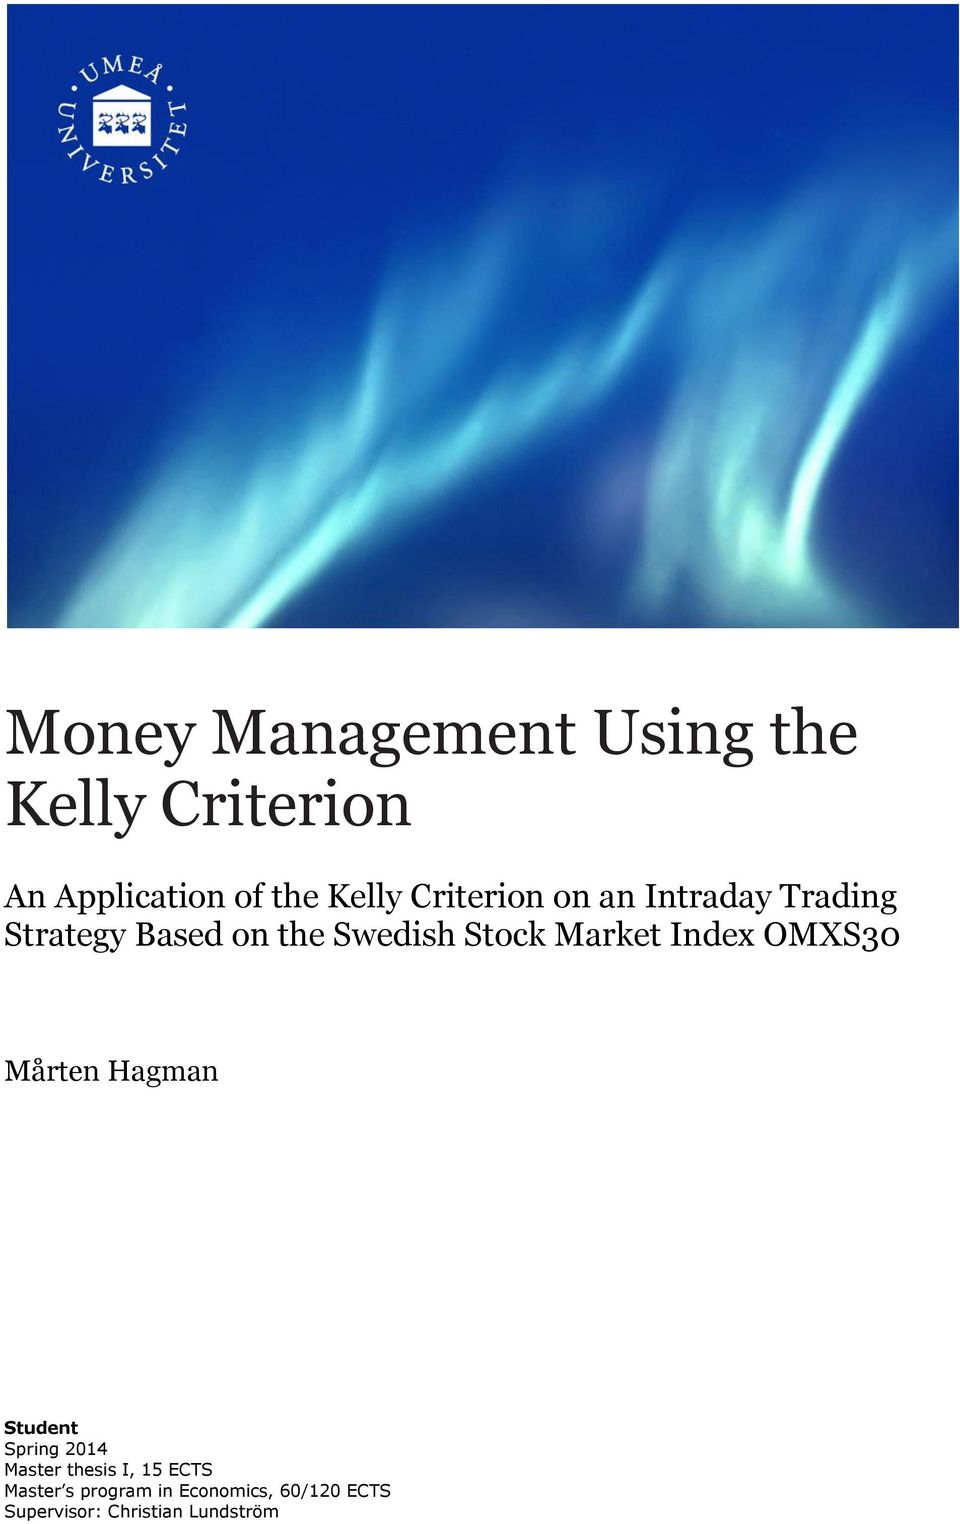 Money Management Using the Kelly Criterion - PDF